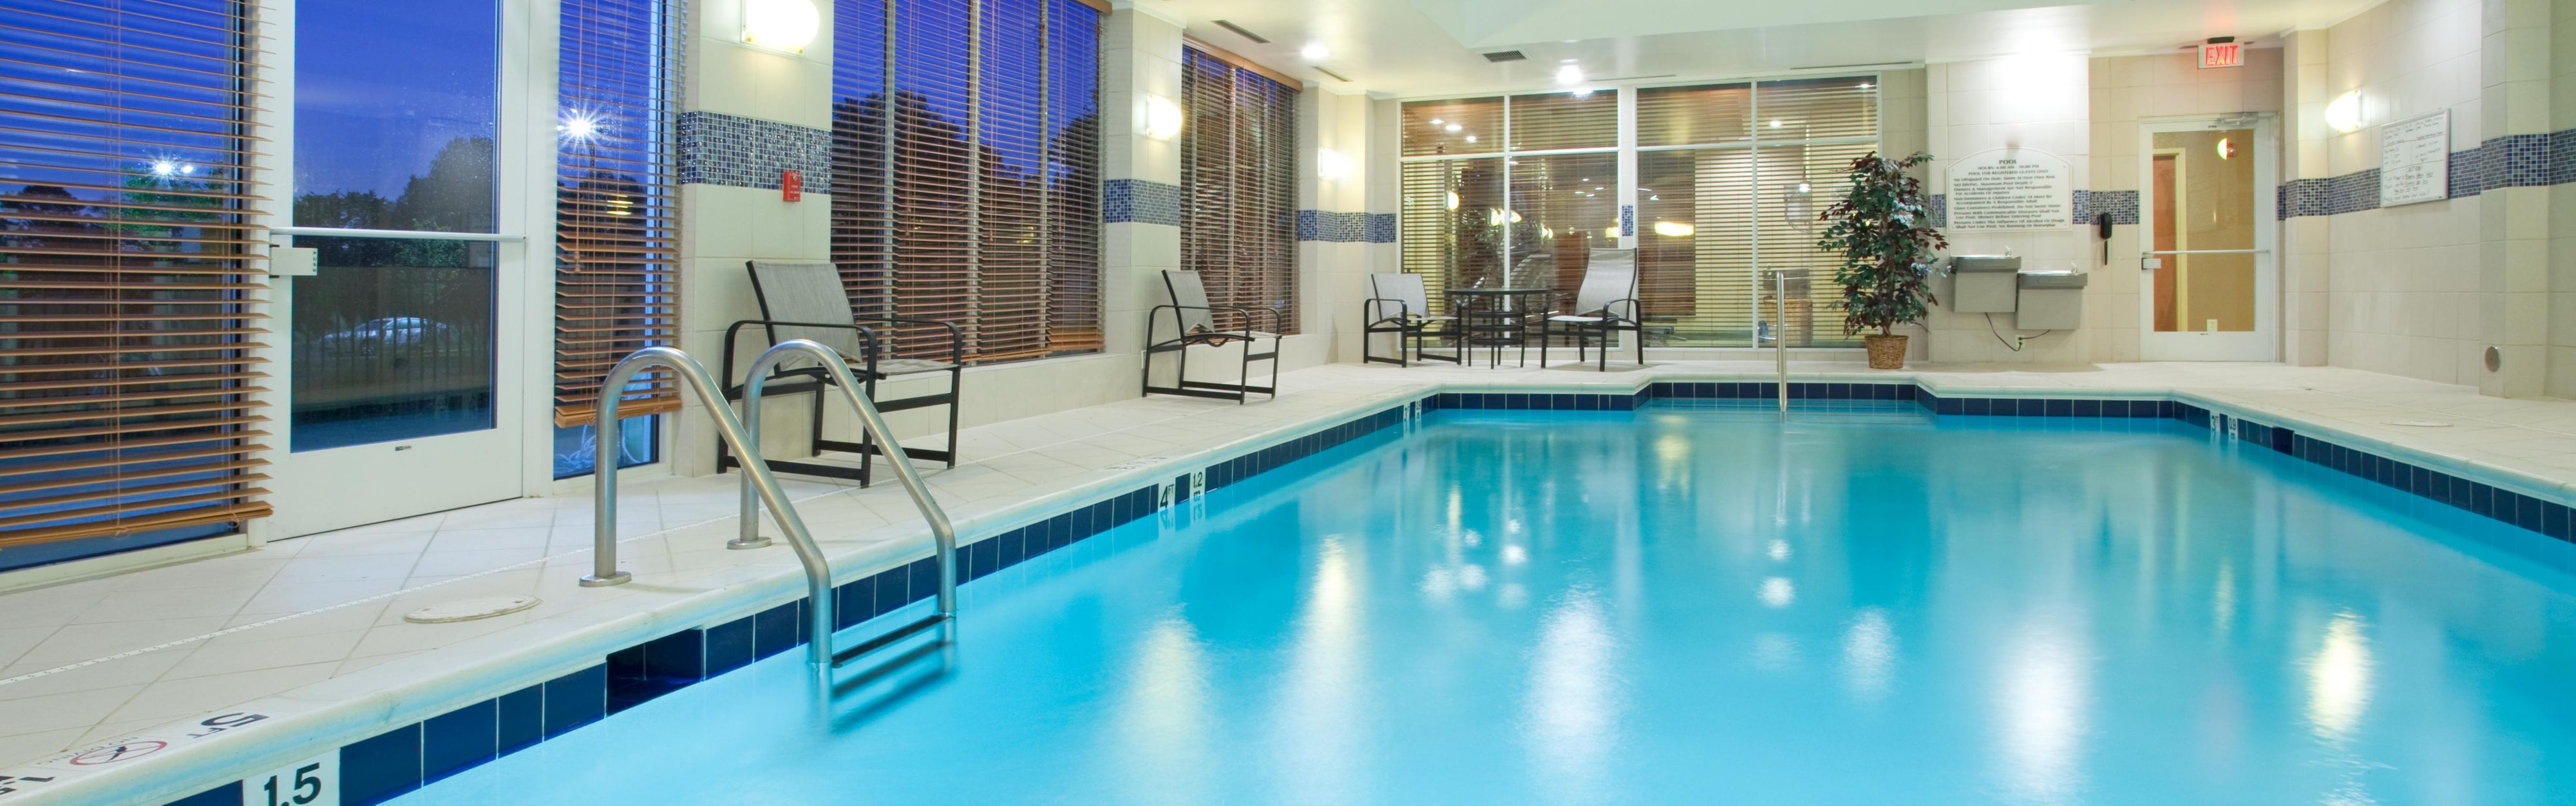 Holiday inn petersburg north fort lee colonial heights - Hilton garden inn colonial heights ...